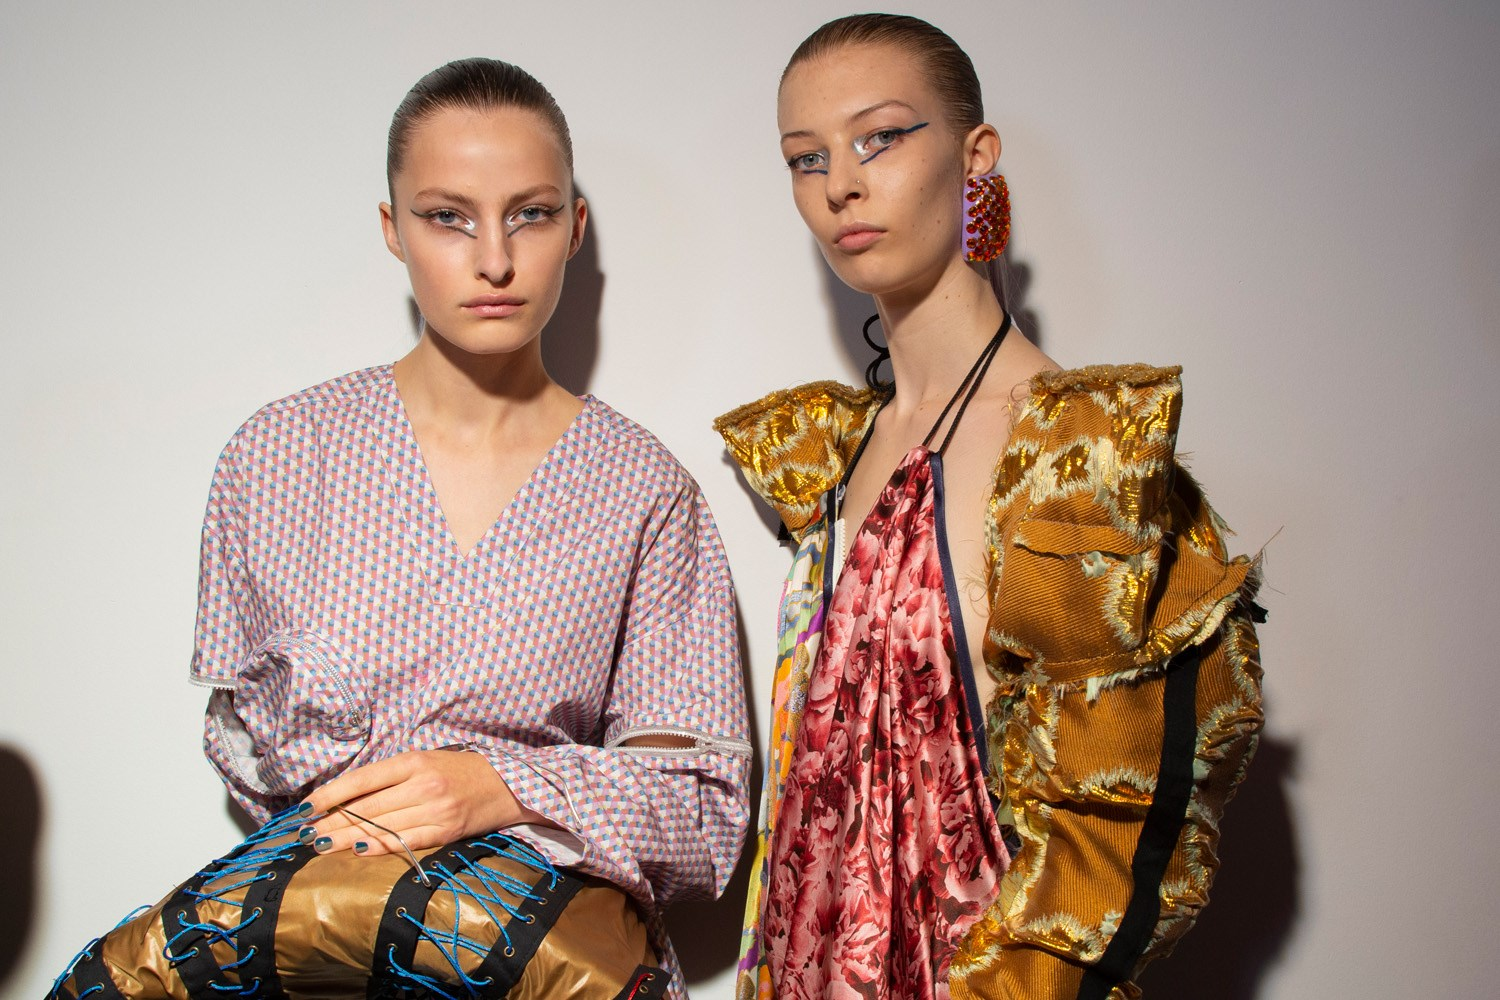 Matty Bowan Spring 2020 Fashion Show Backstage